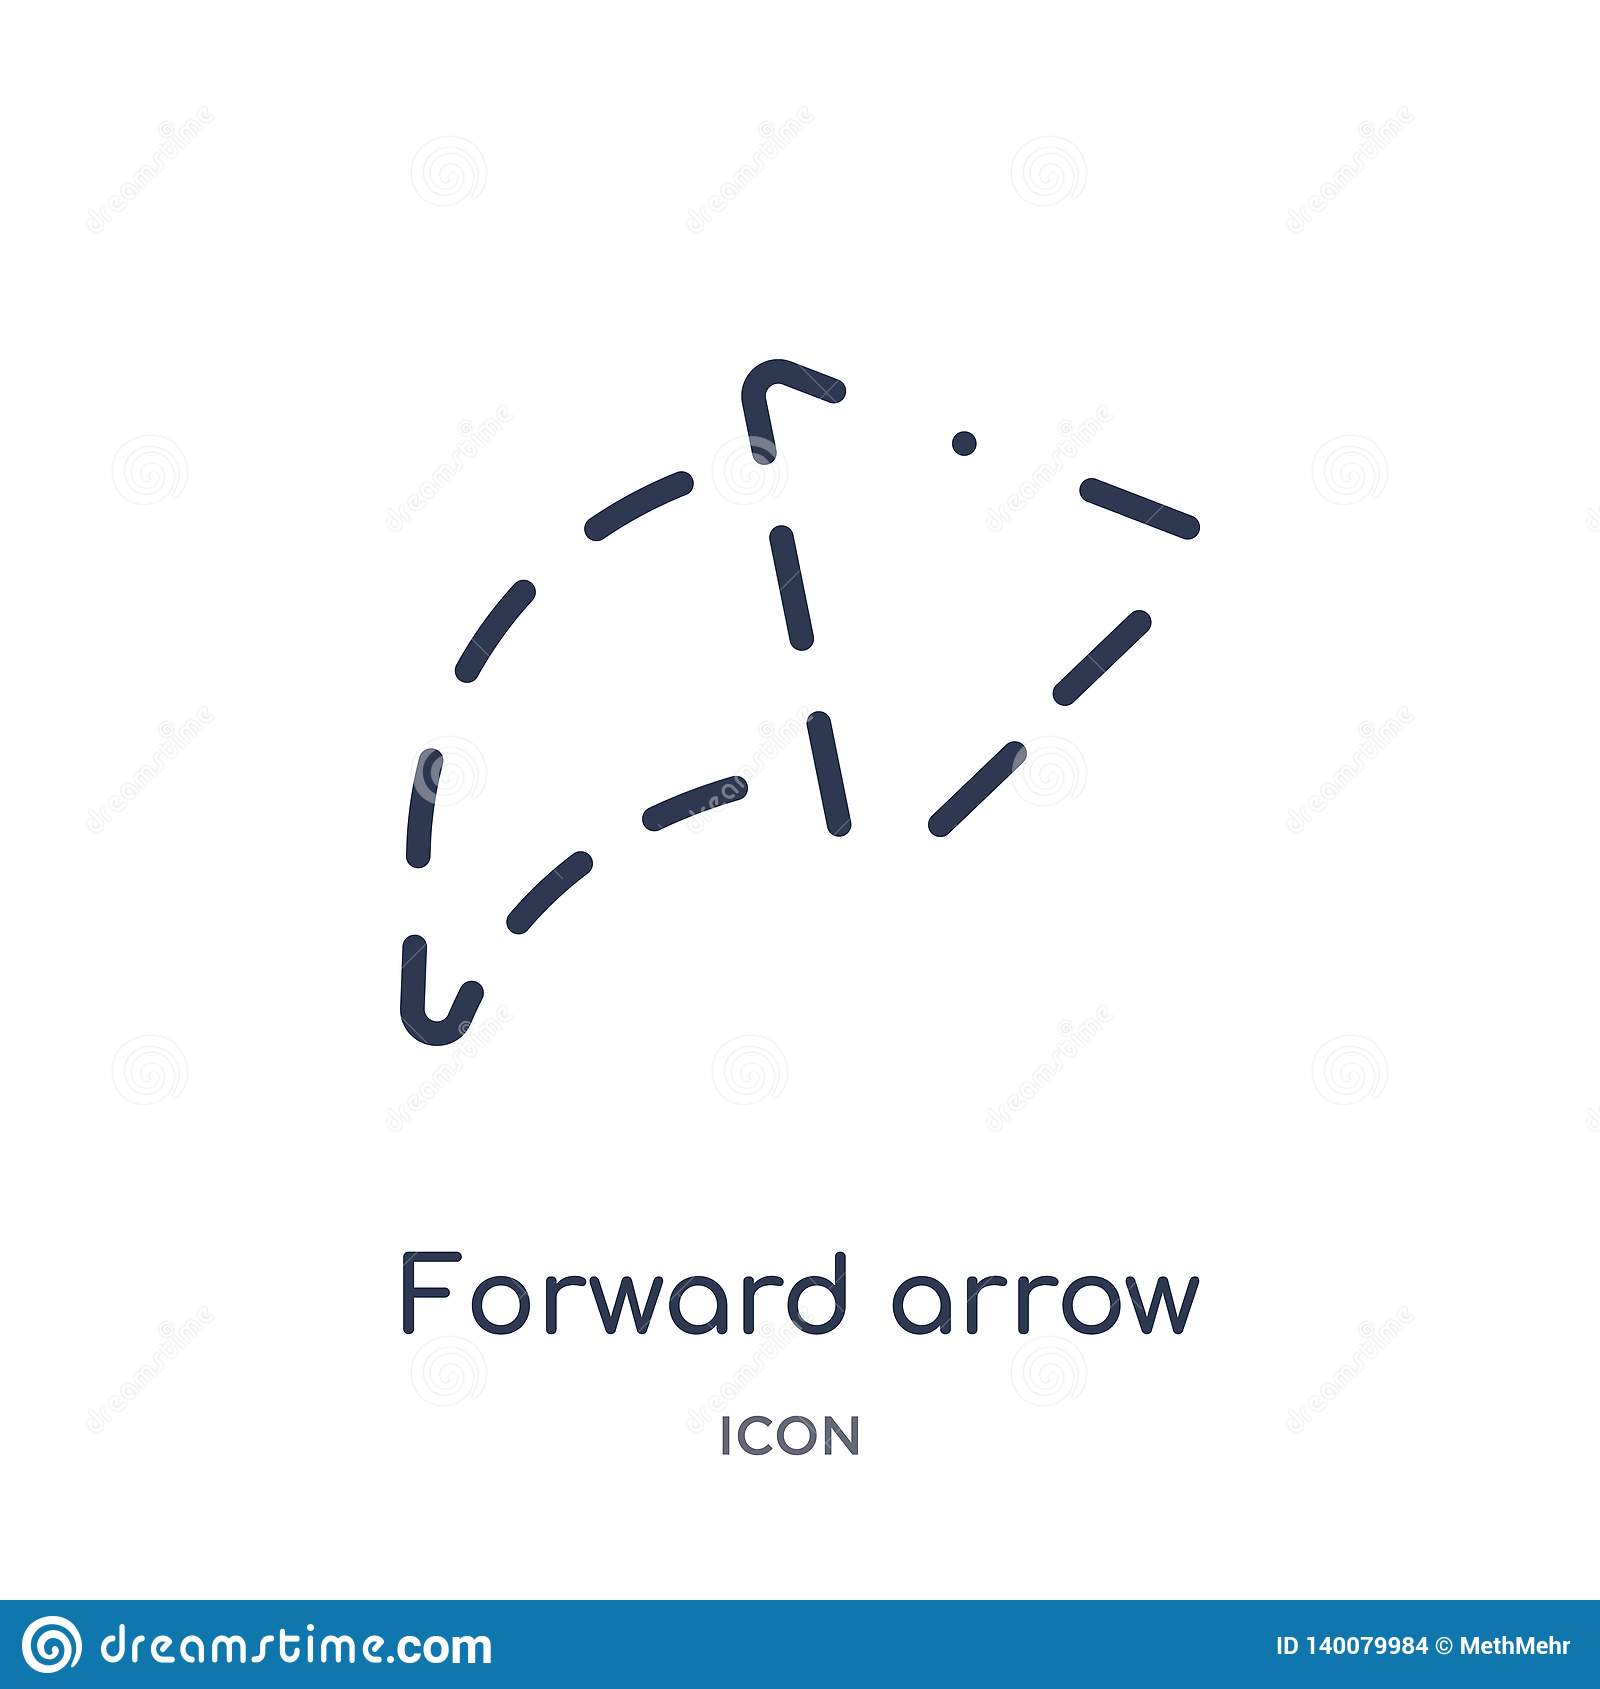 forward arrow with broken icon from user interface outline collection. Thin line forward arrow with broken icon isolated on white